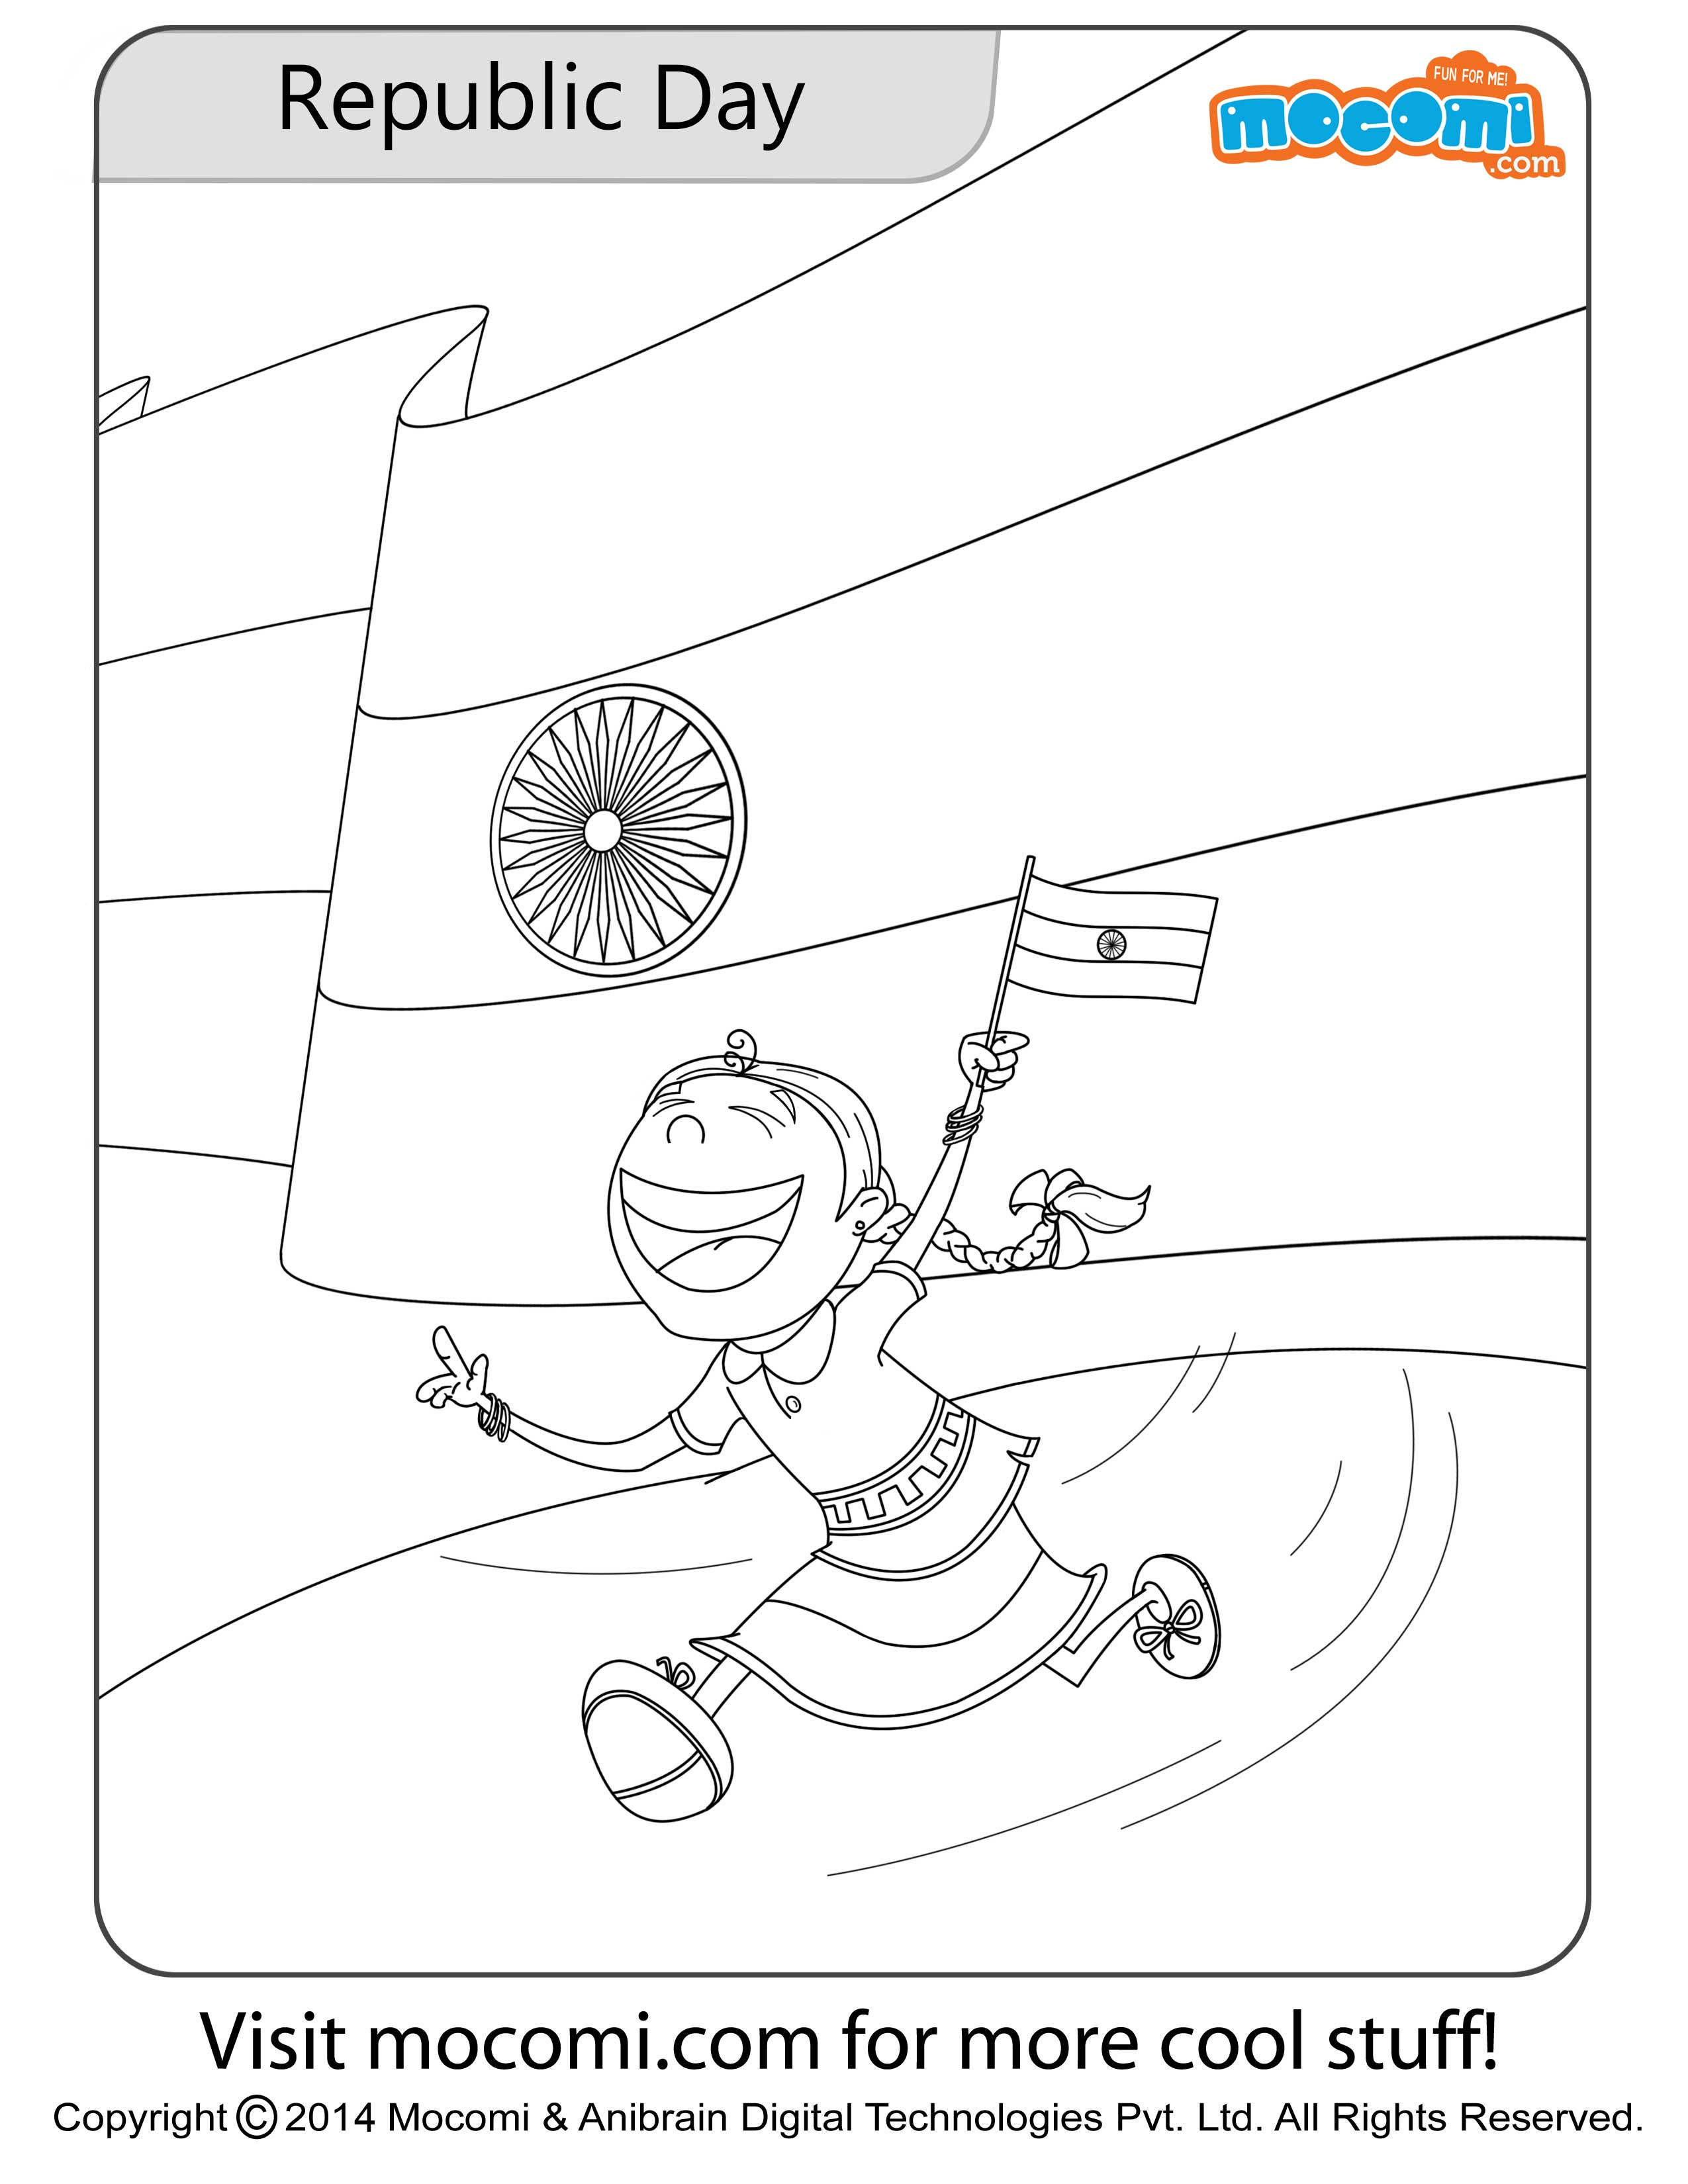 Pinky Republic Day Colouring Page